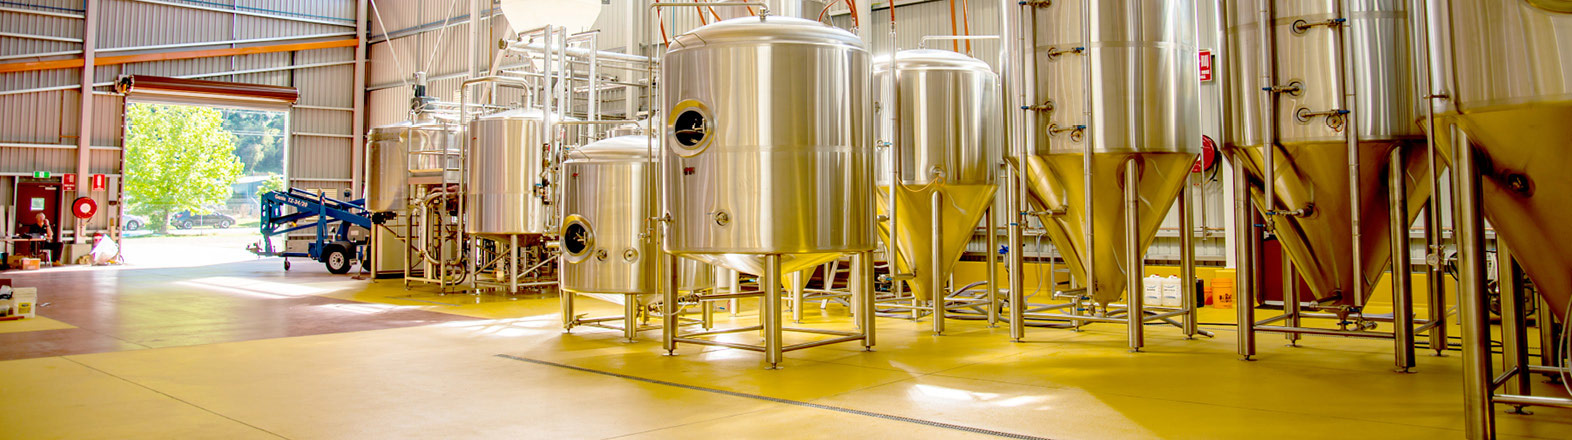 Flooring Design for Brewery Production Areas